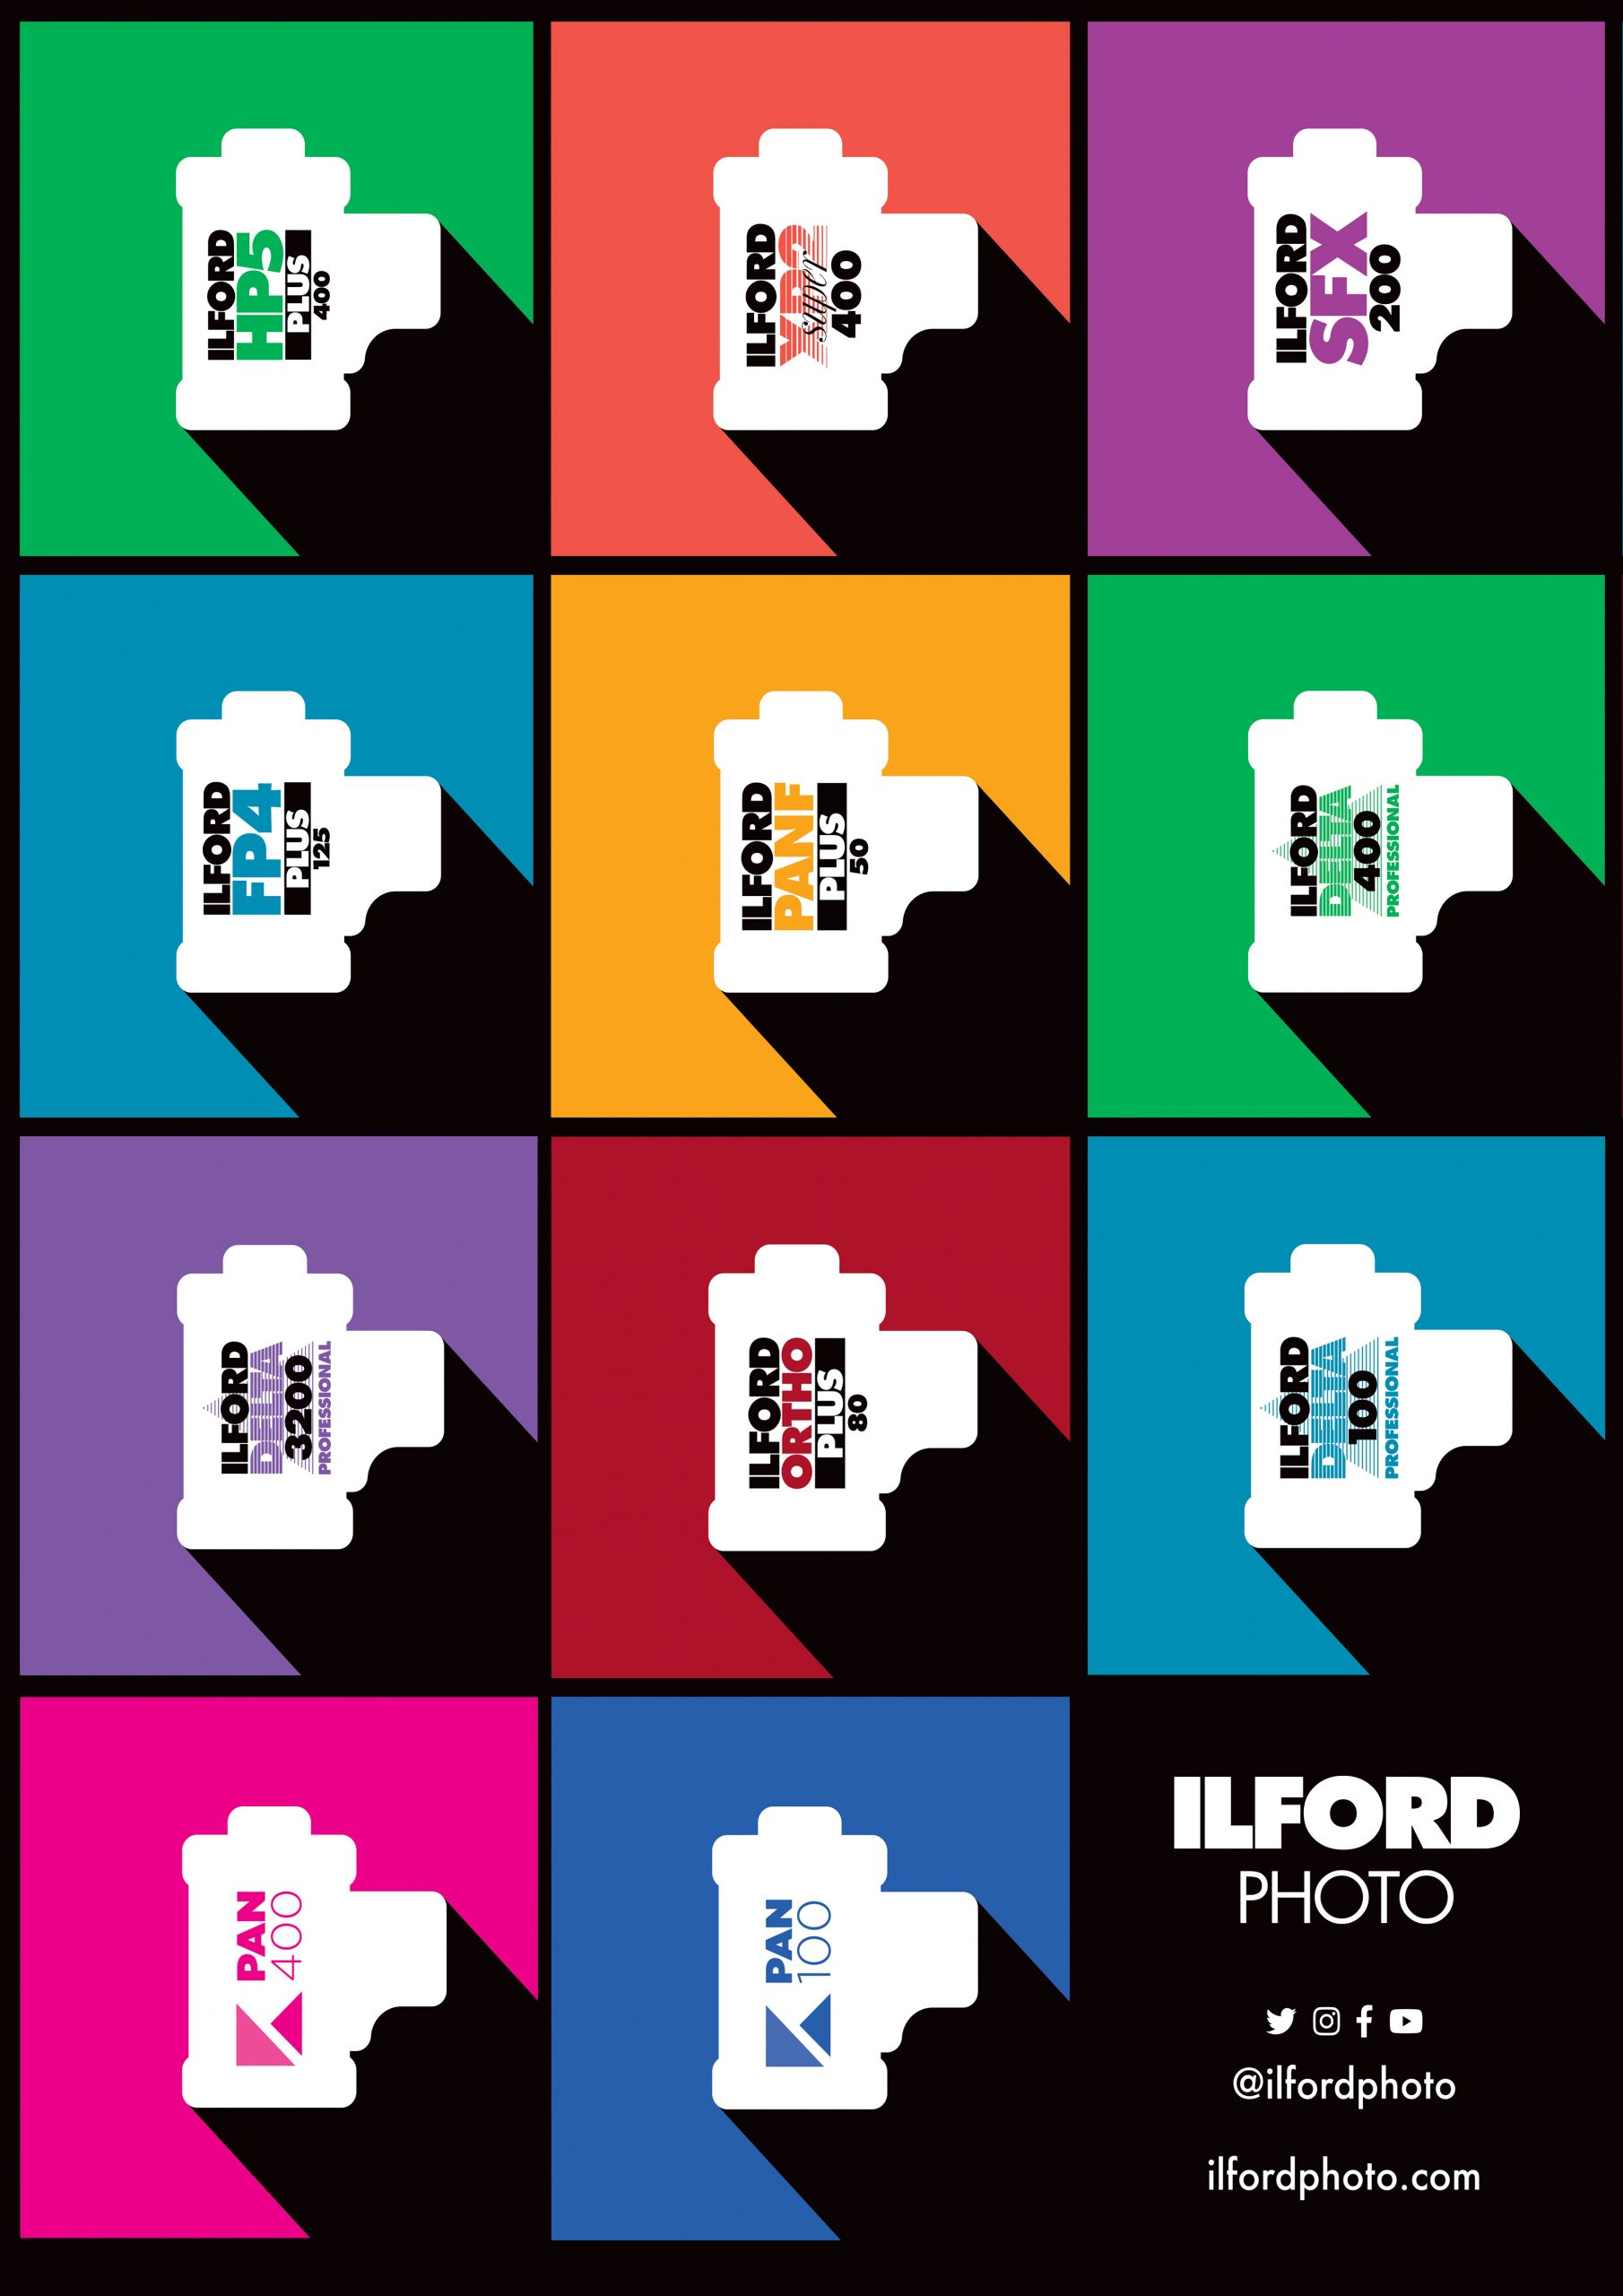 Pop art style poster showing ILFORD black and white film range in 35mm